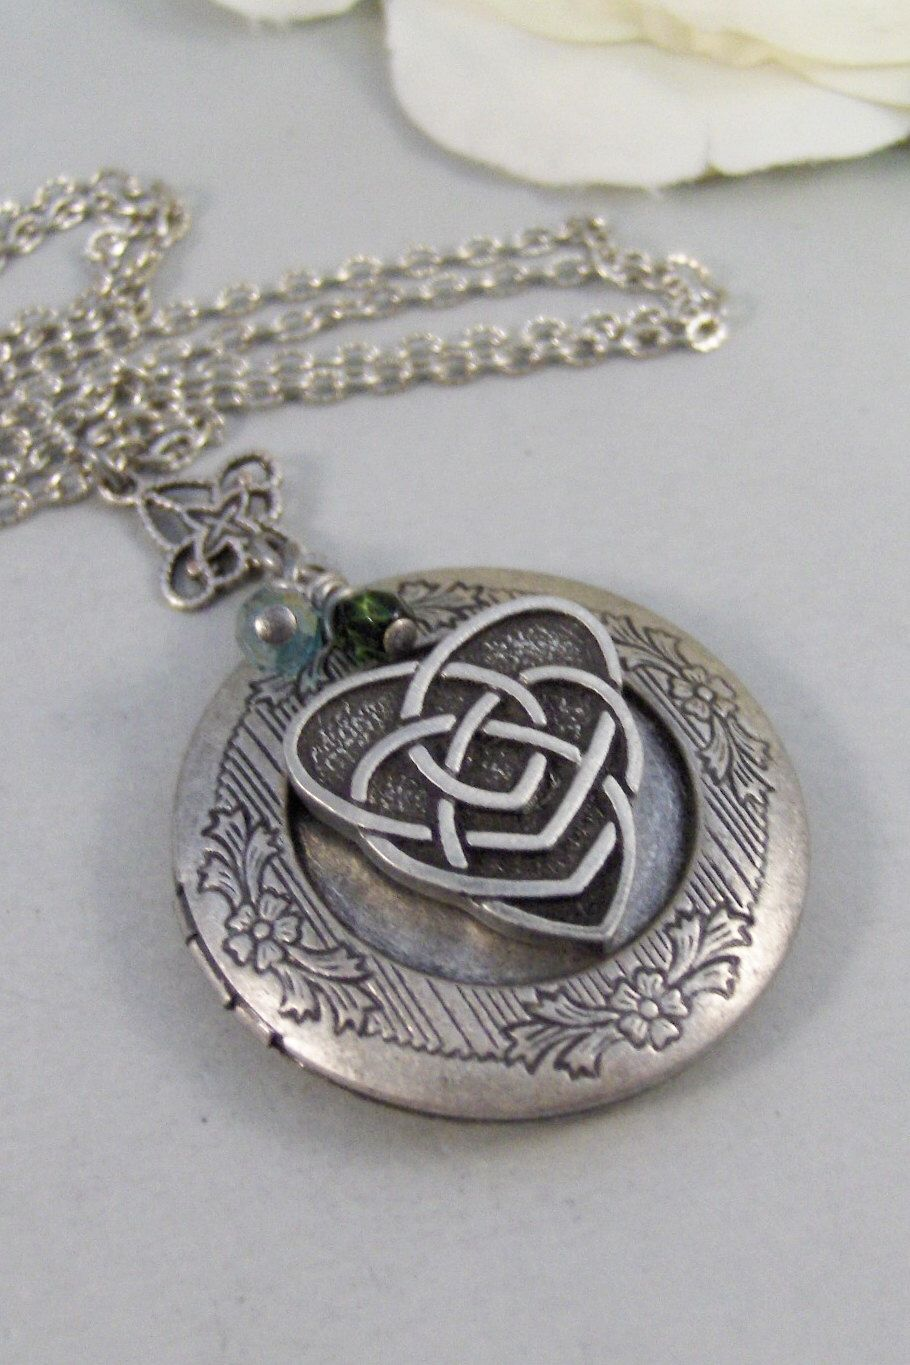 style knot vintage wedding jewelry gift irish lockets locket necklace silver pin bridesmaid celtic